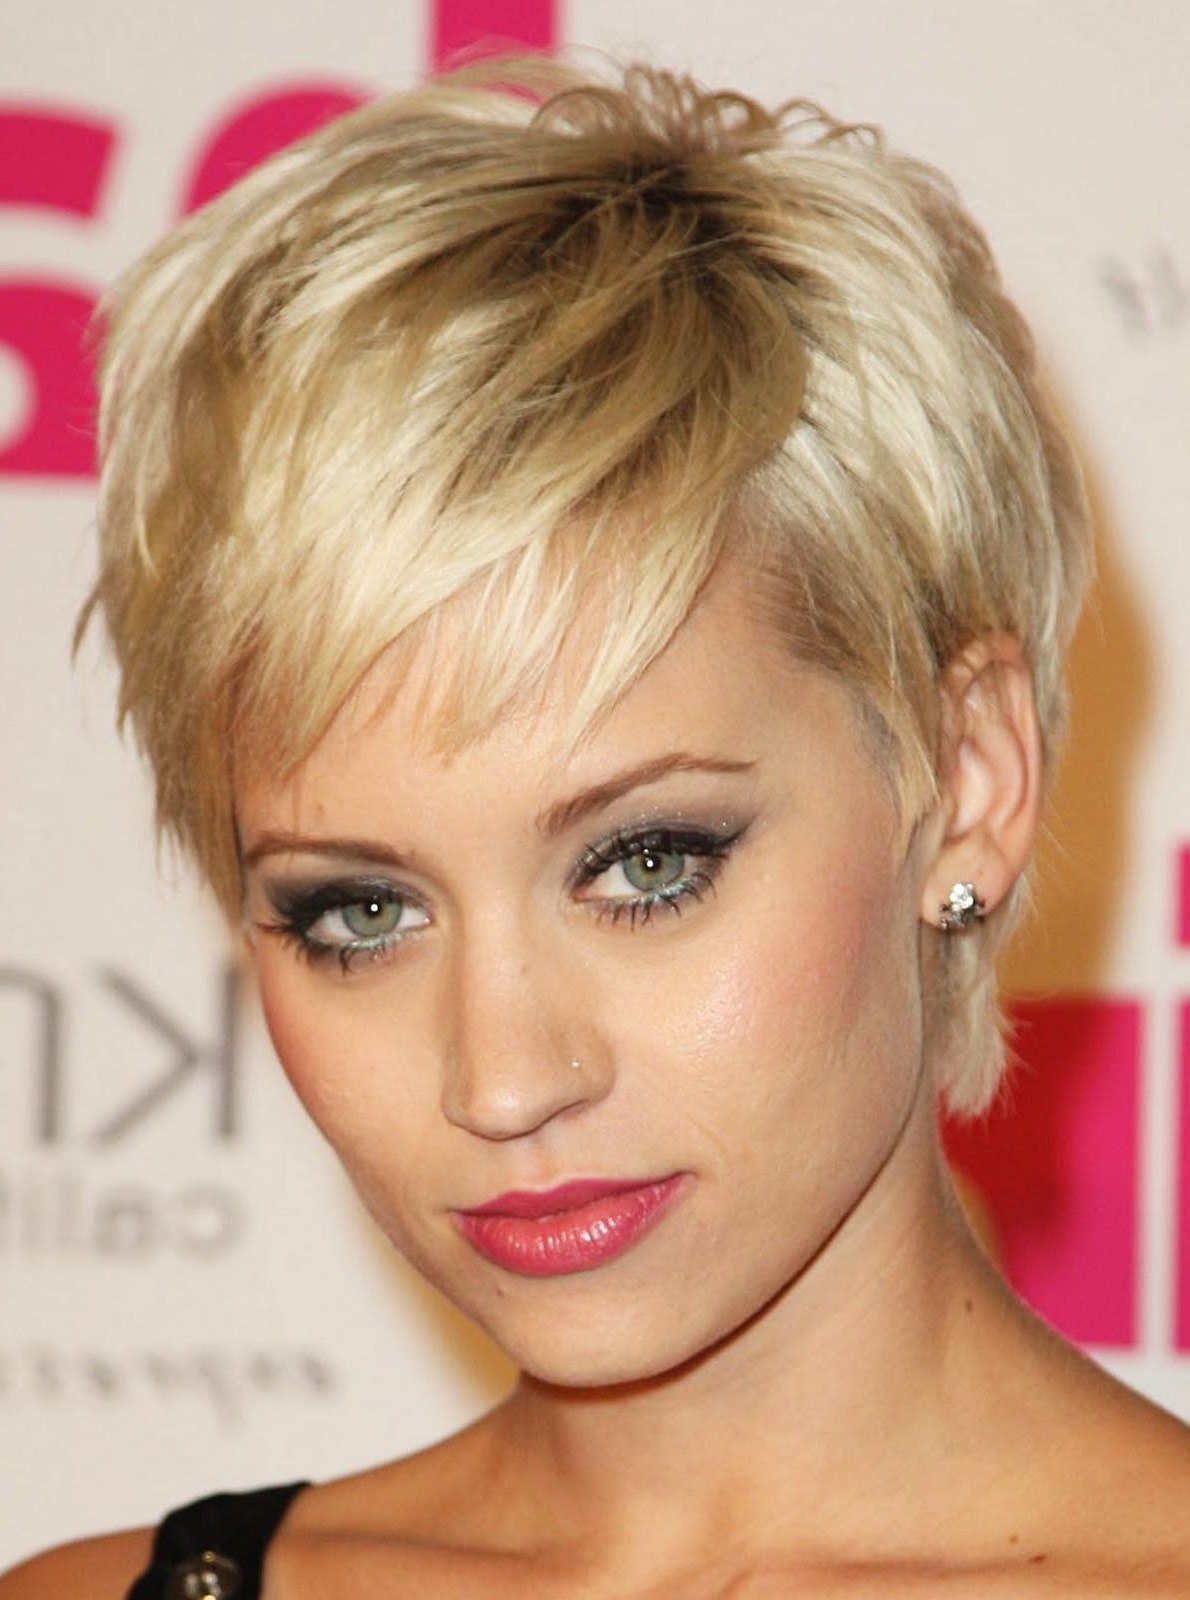 Short Hairstyles For Oval Faces | Hair Cut | Pinterest | Short Hair With Regard To Short Haircuts For Oval Faces (View 4 of 25)